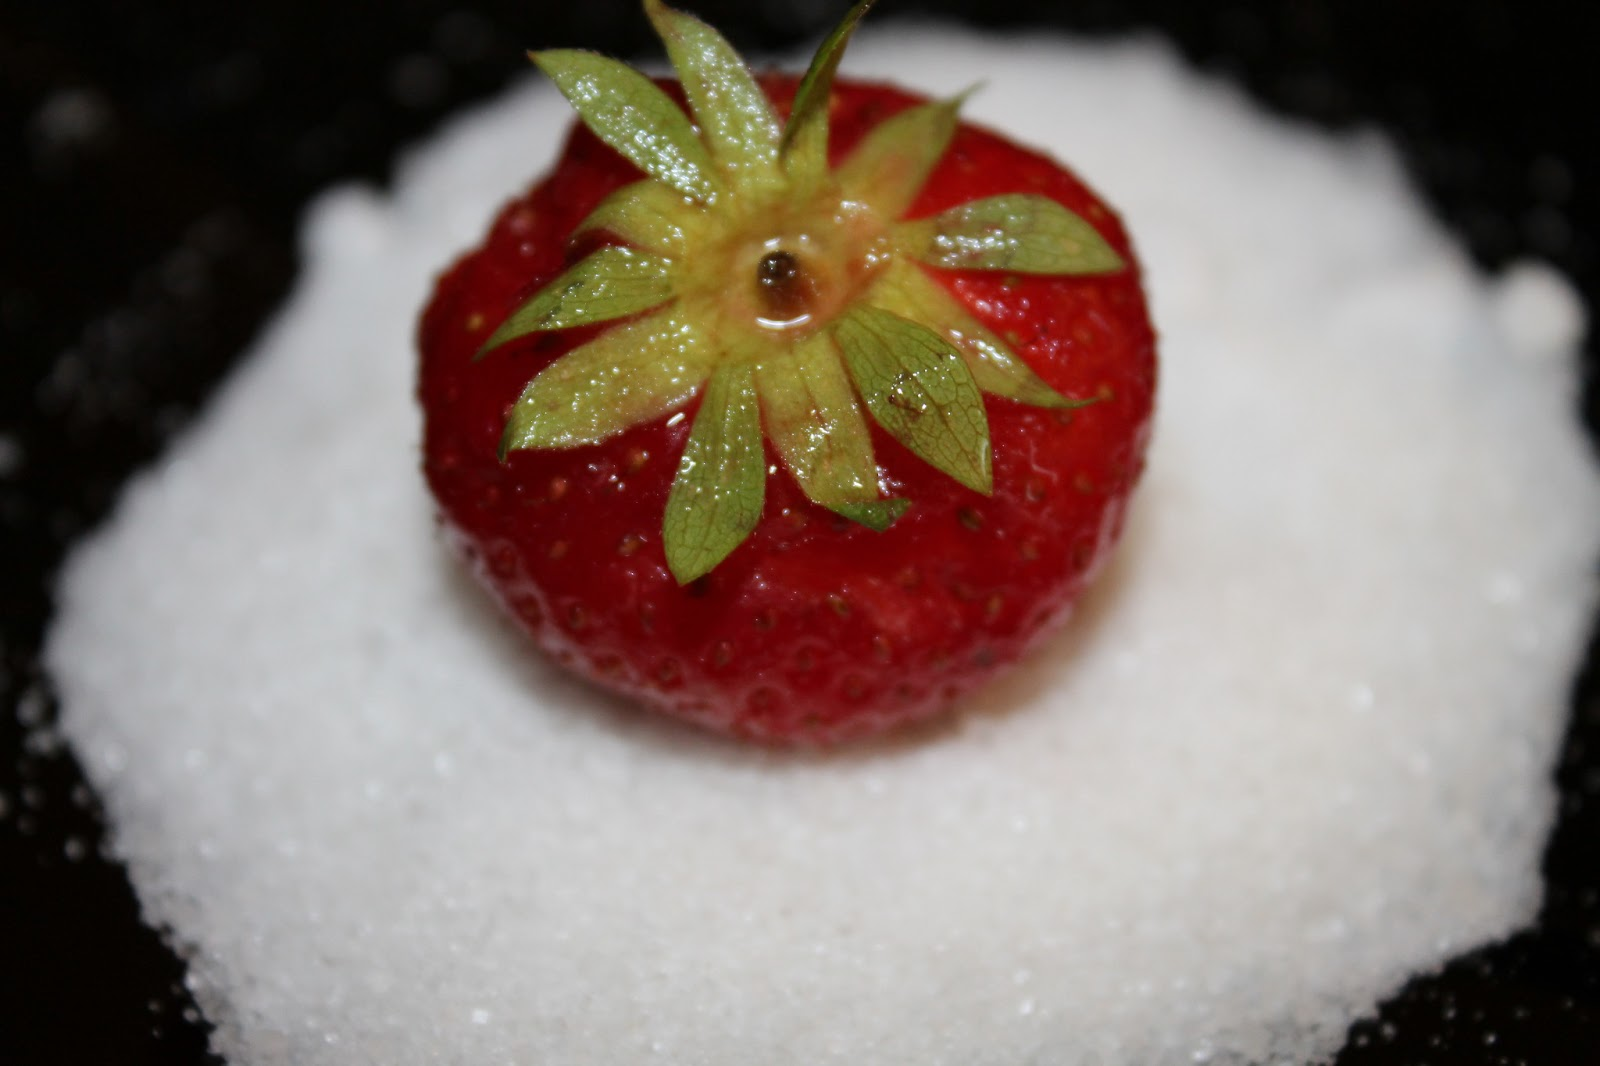 The Home Of The Twisted Red LadyBug: The Anatomy Of A Strawberry